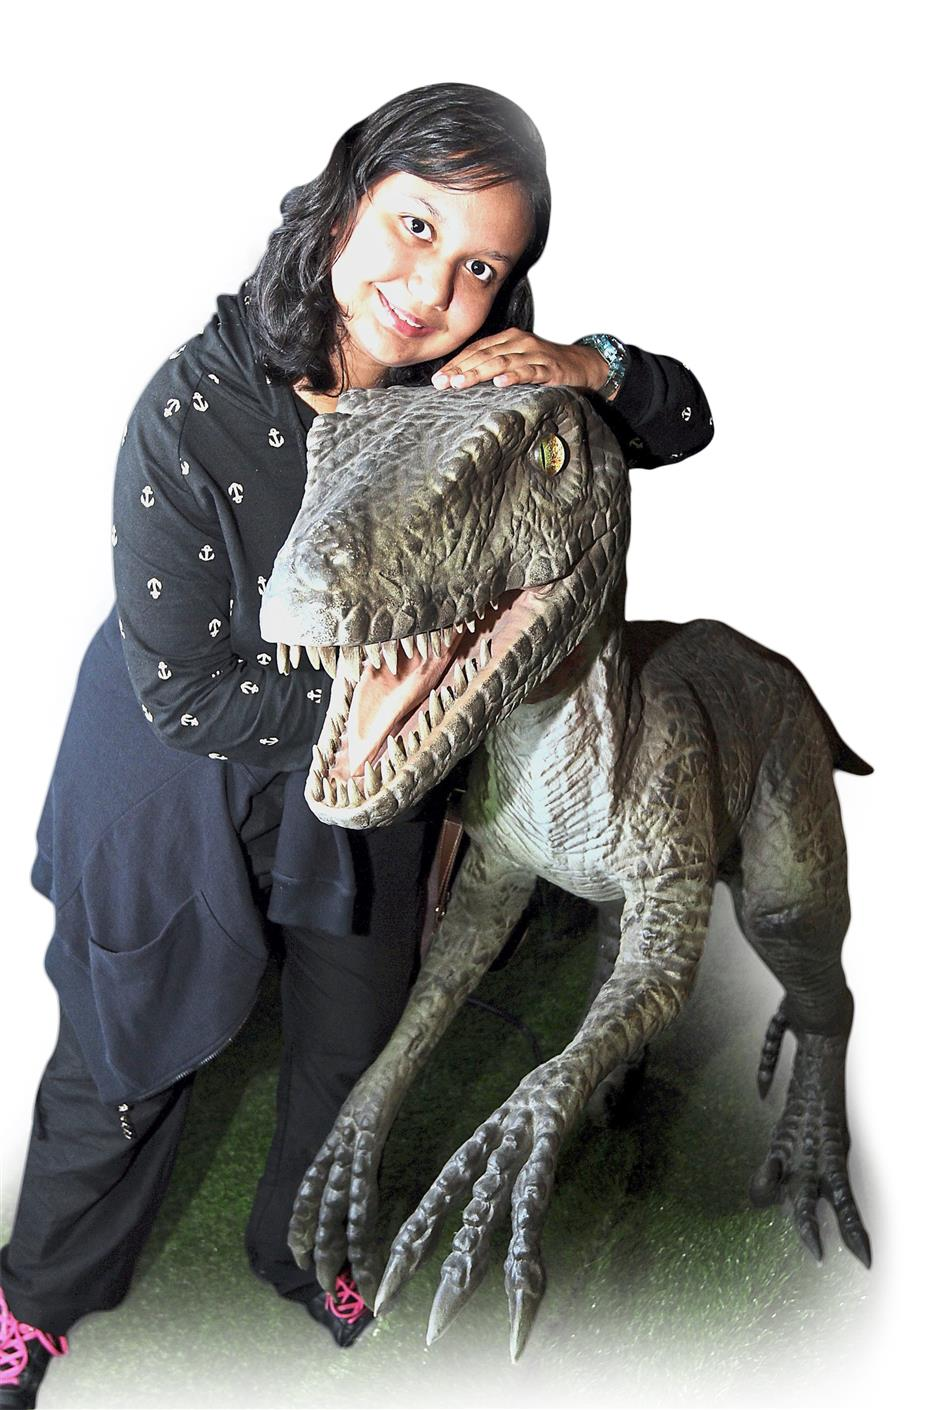 Jasvina is brave indeed as she hugs a life-size dinosaur model at the Jurassic Research Centre.